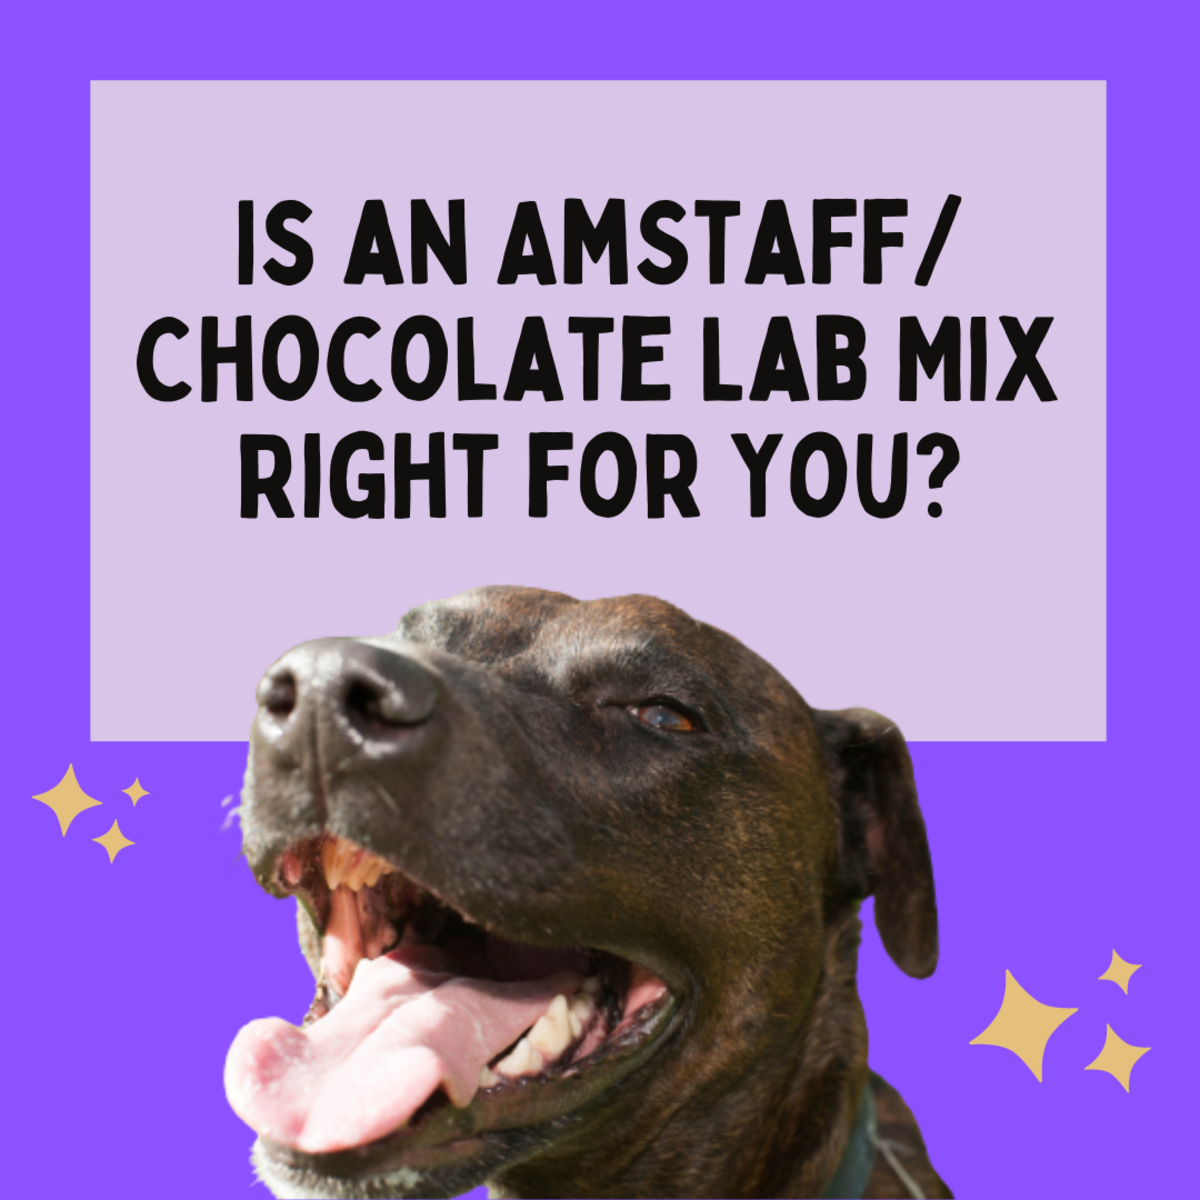 Read about one family's experience with an American Staffordshire Terrier/Chocolate Labrador Retriever mix, and decide if this great dog is a good fit for you.